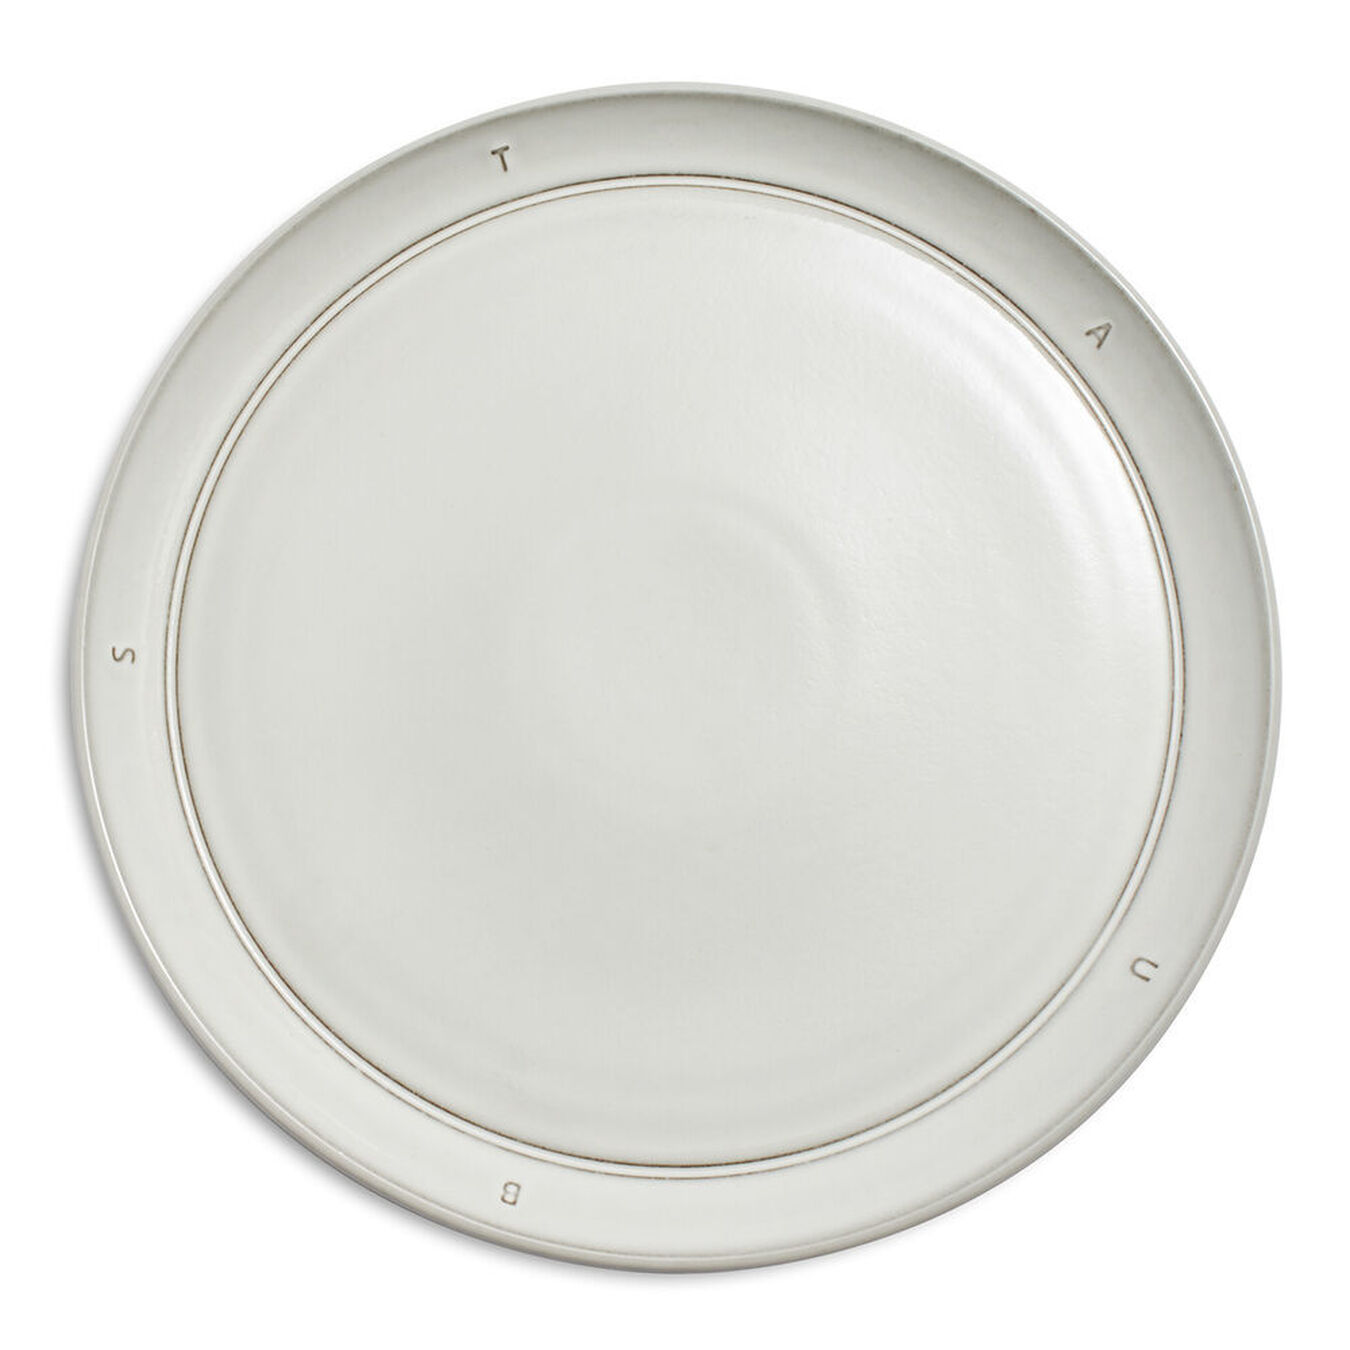 "11-inch, Dinner Plate 28.5cm / 11.25"" - White, Off-White,,large 1"